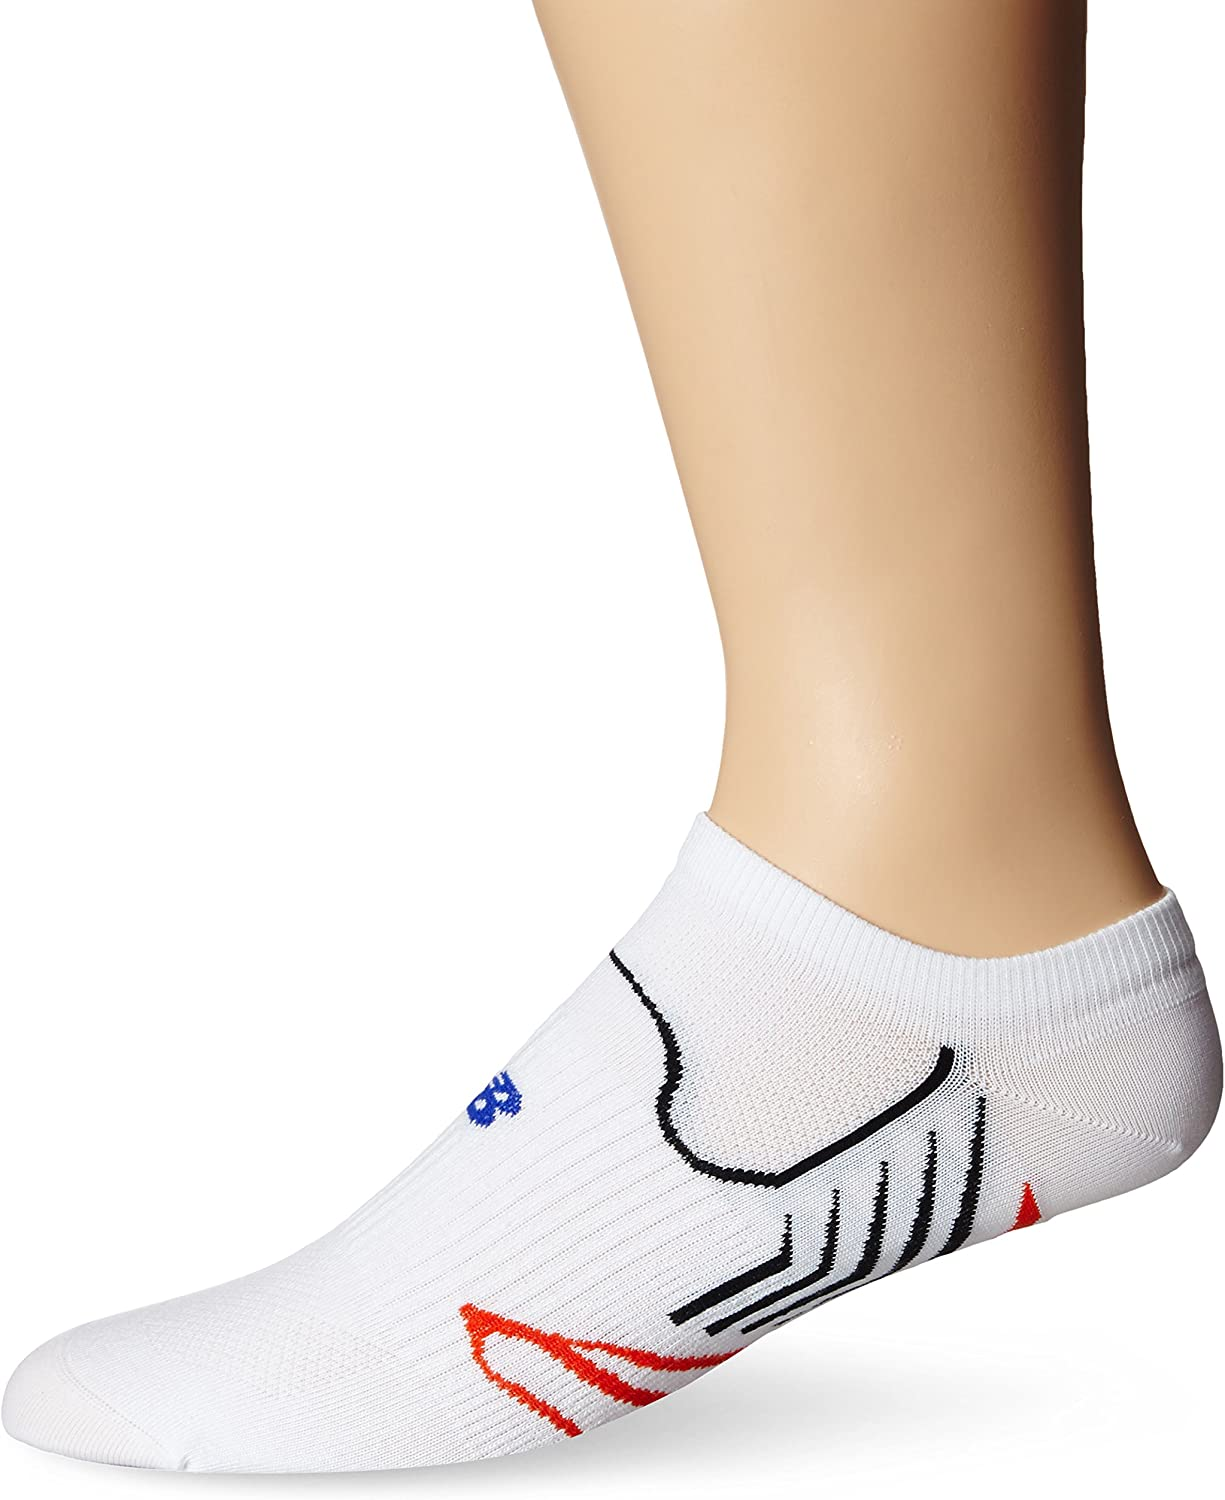 New Balance Unisex 1 Pack Technical Elite NBX Sprinter No Show Socks